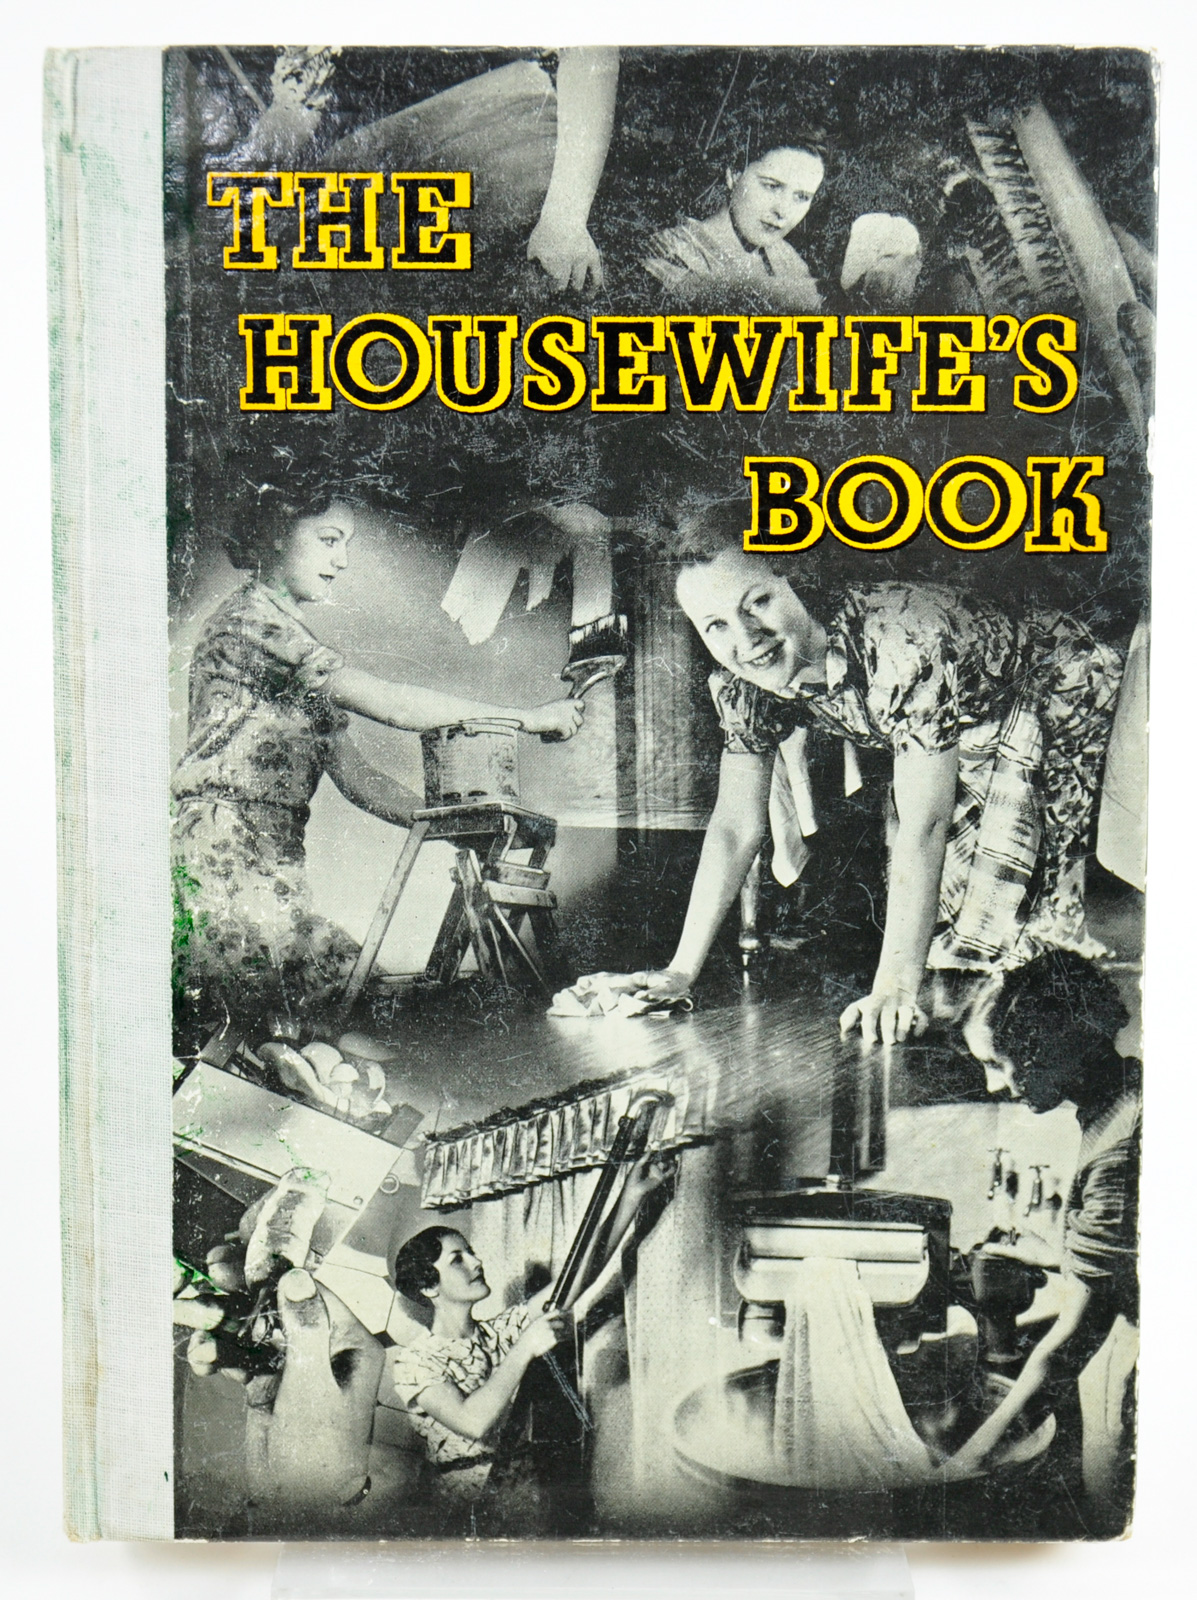 The Housewife's Book, around 1925-30. The front cover is a montage of black and white photos of women doing various housework tasks, including scrubbing the floor and using a clothes wringer.